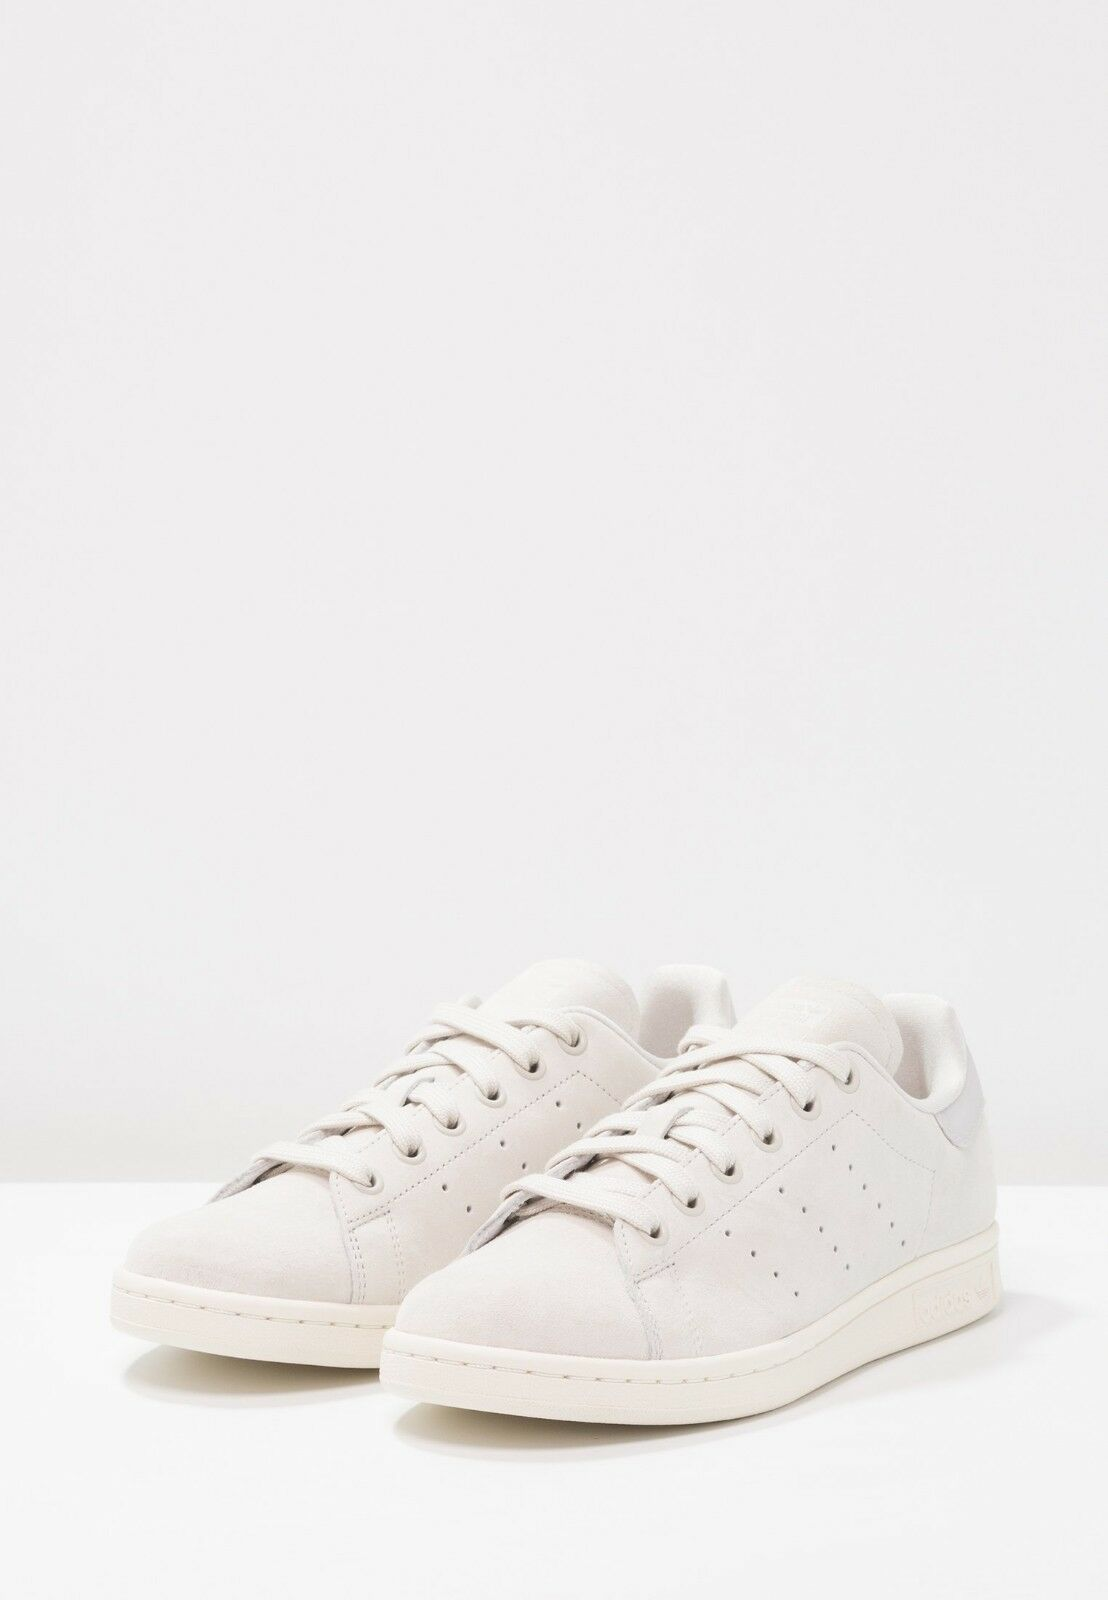 Adidas TRAINER Originals LA TRAINER Adidas OG EXCLUSIVE Sneaker Niedrig Damen Ice Pink 38 2\3 S4559 2caaeb